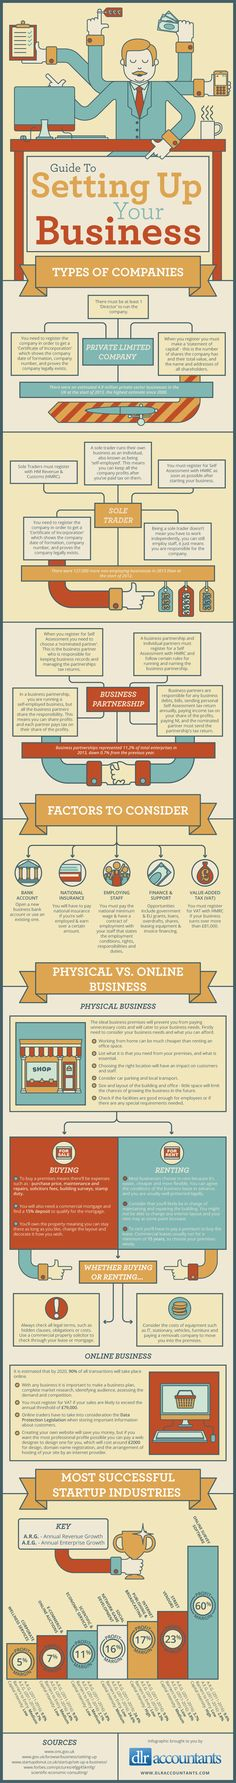 Guide To Setting Up Your Business - #infographic